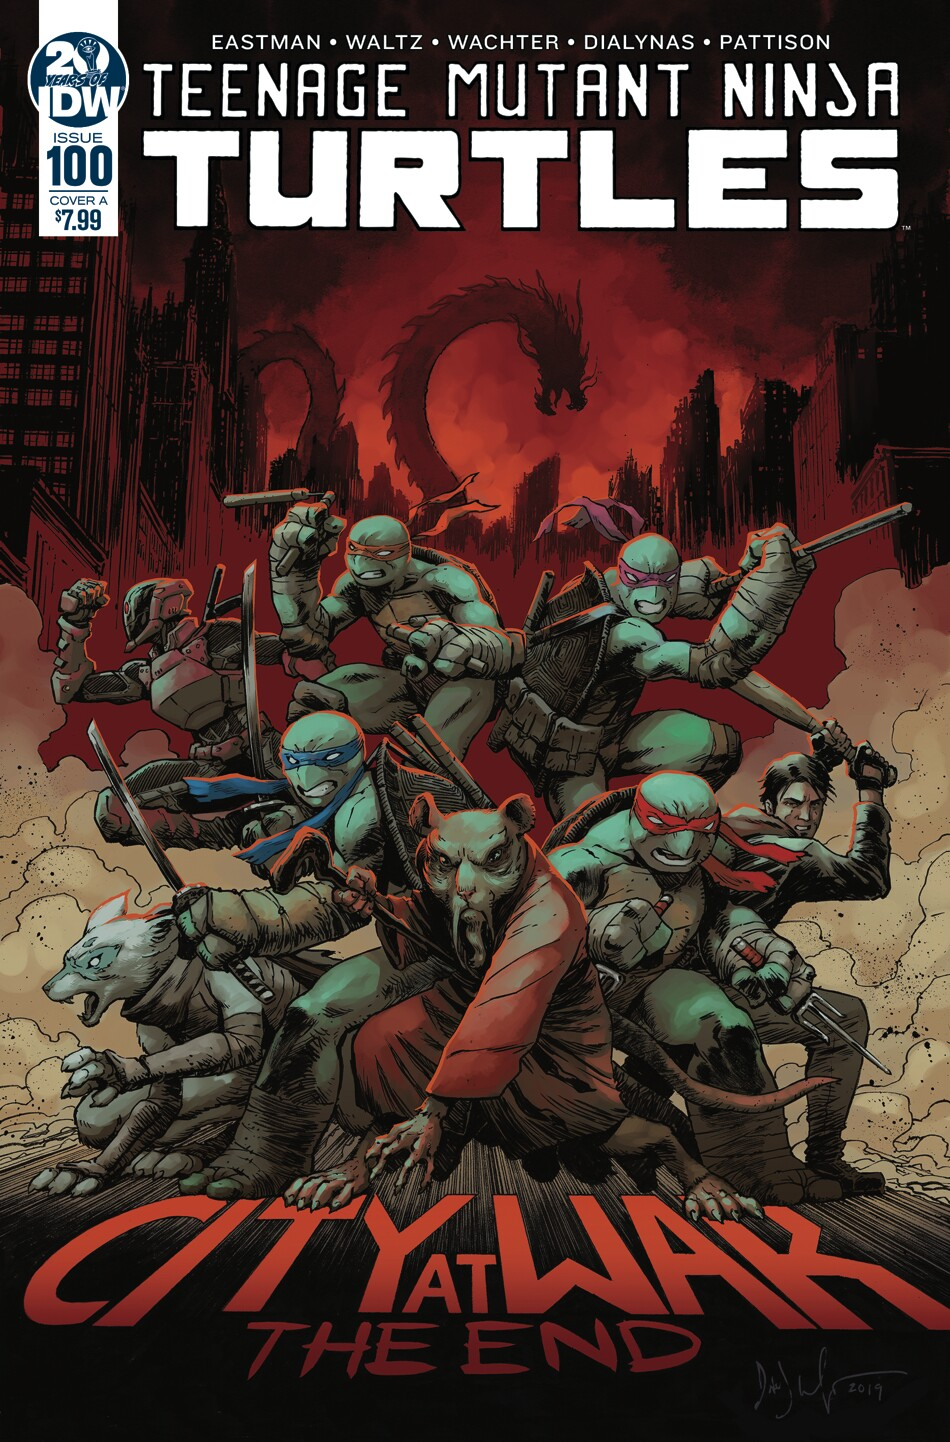 Idw Publishing S Teenage Mutant Ninja Turtles Reaches 100th Edition Milestone The San Diego Union Tribune